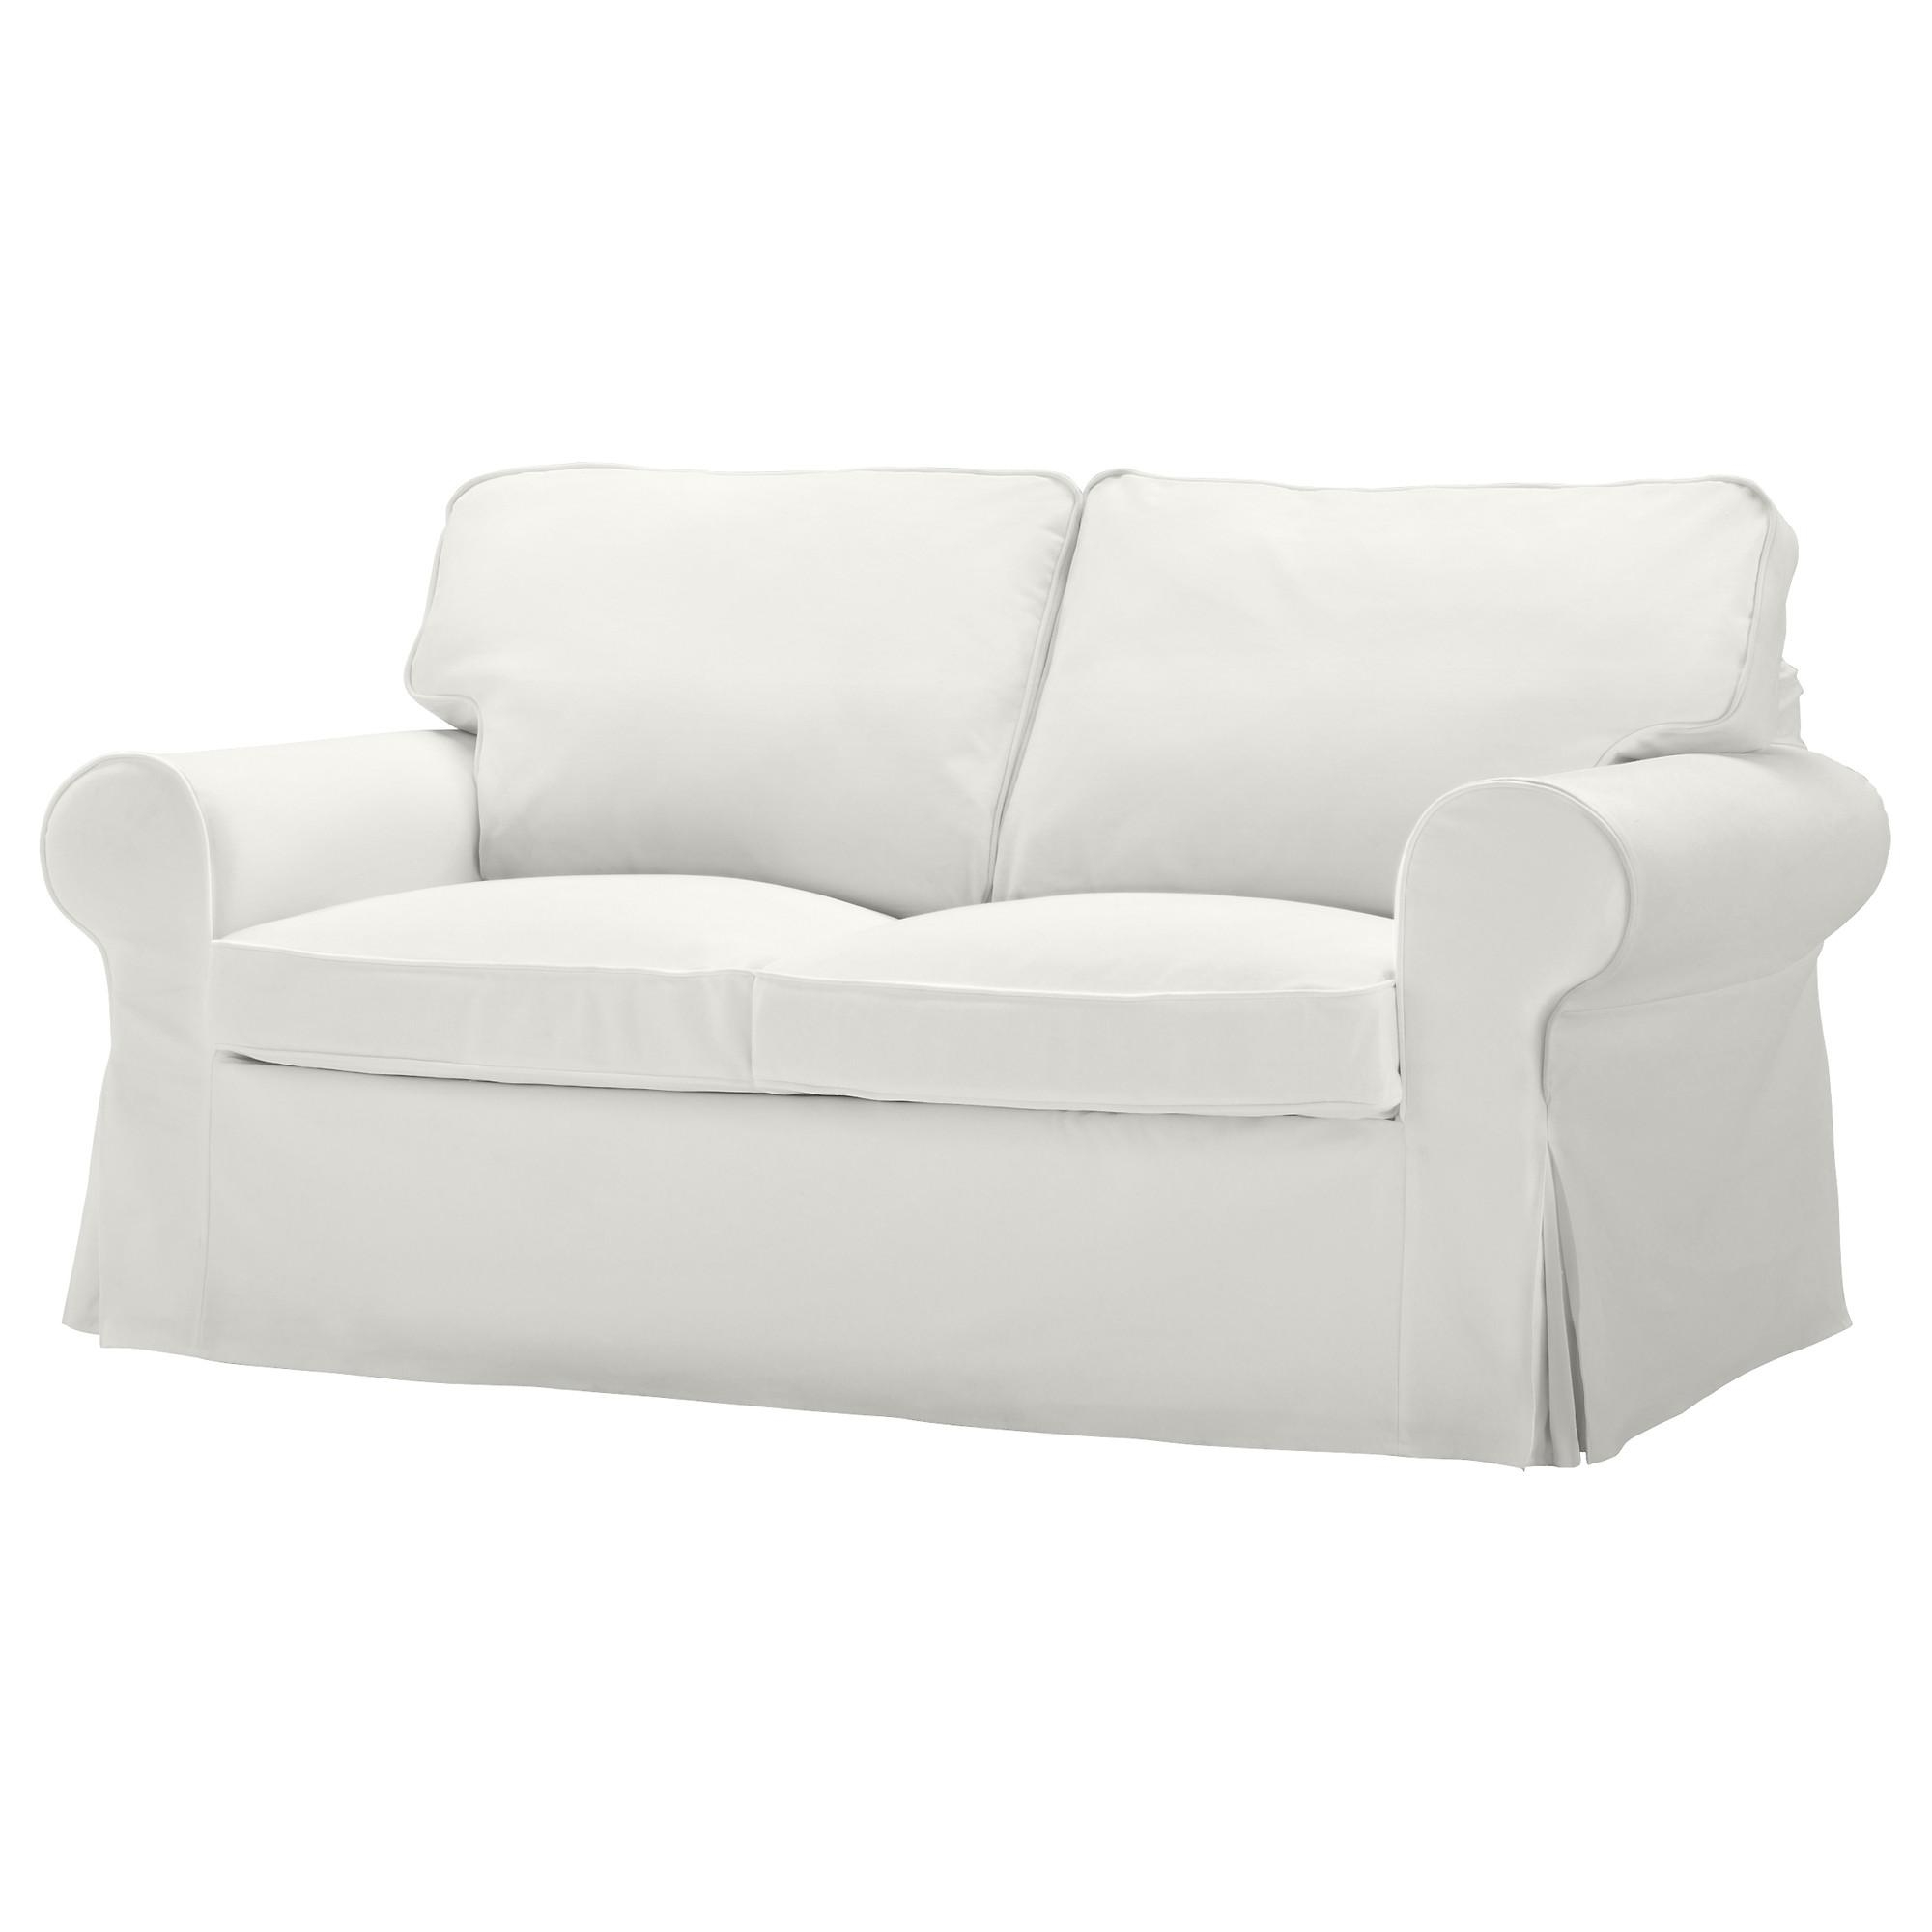 ikea 4 seater sofa cover rooms to go outlet bed 20 43 choices of two sofas ideas